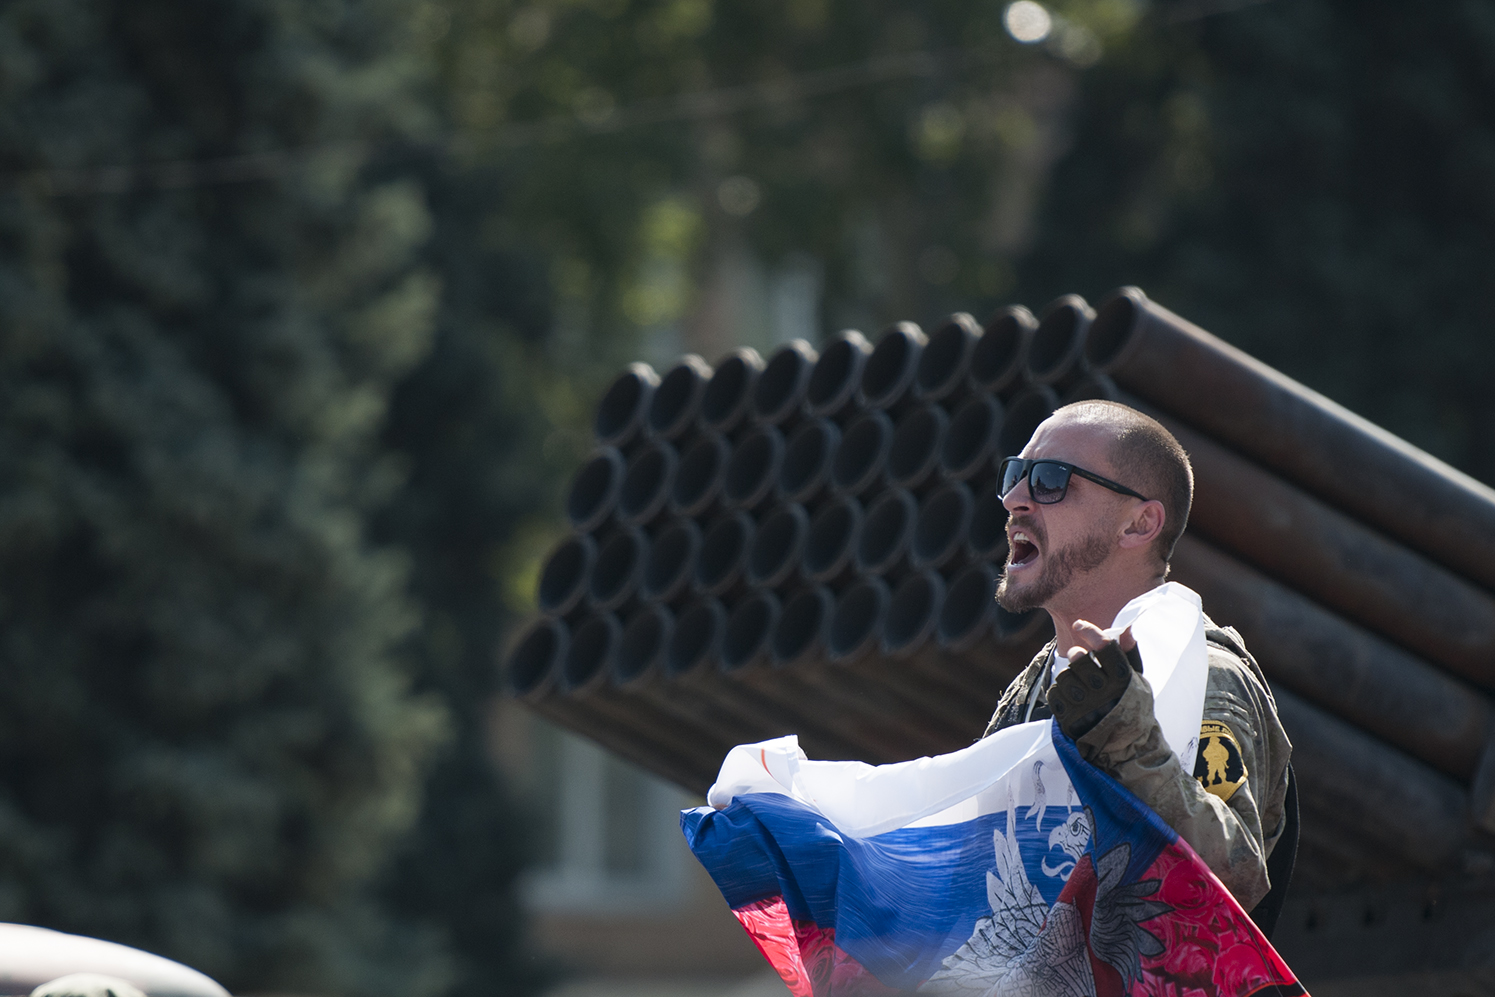 DNR soldier cheering in front of a BM-21 remains